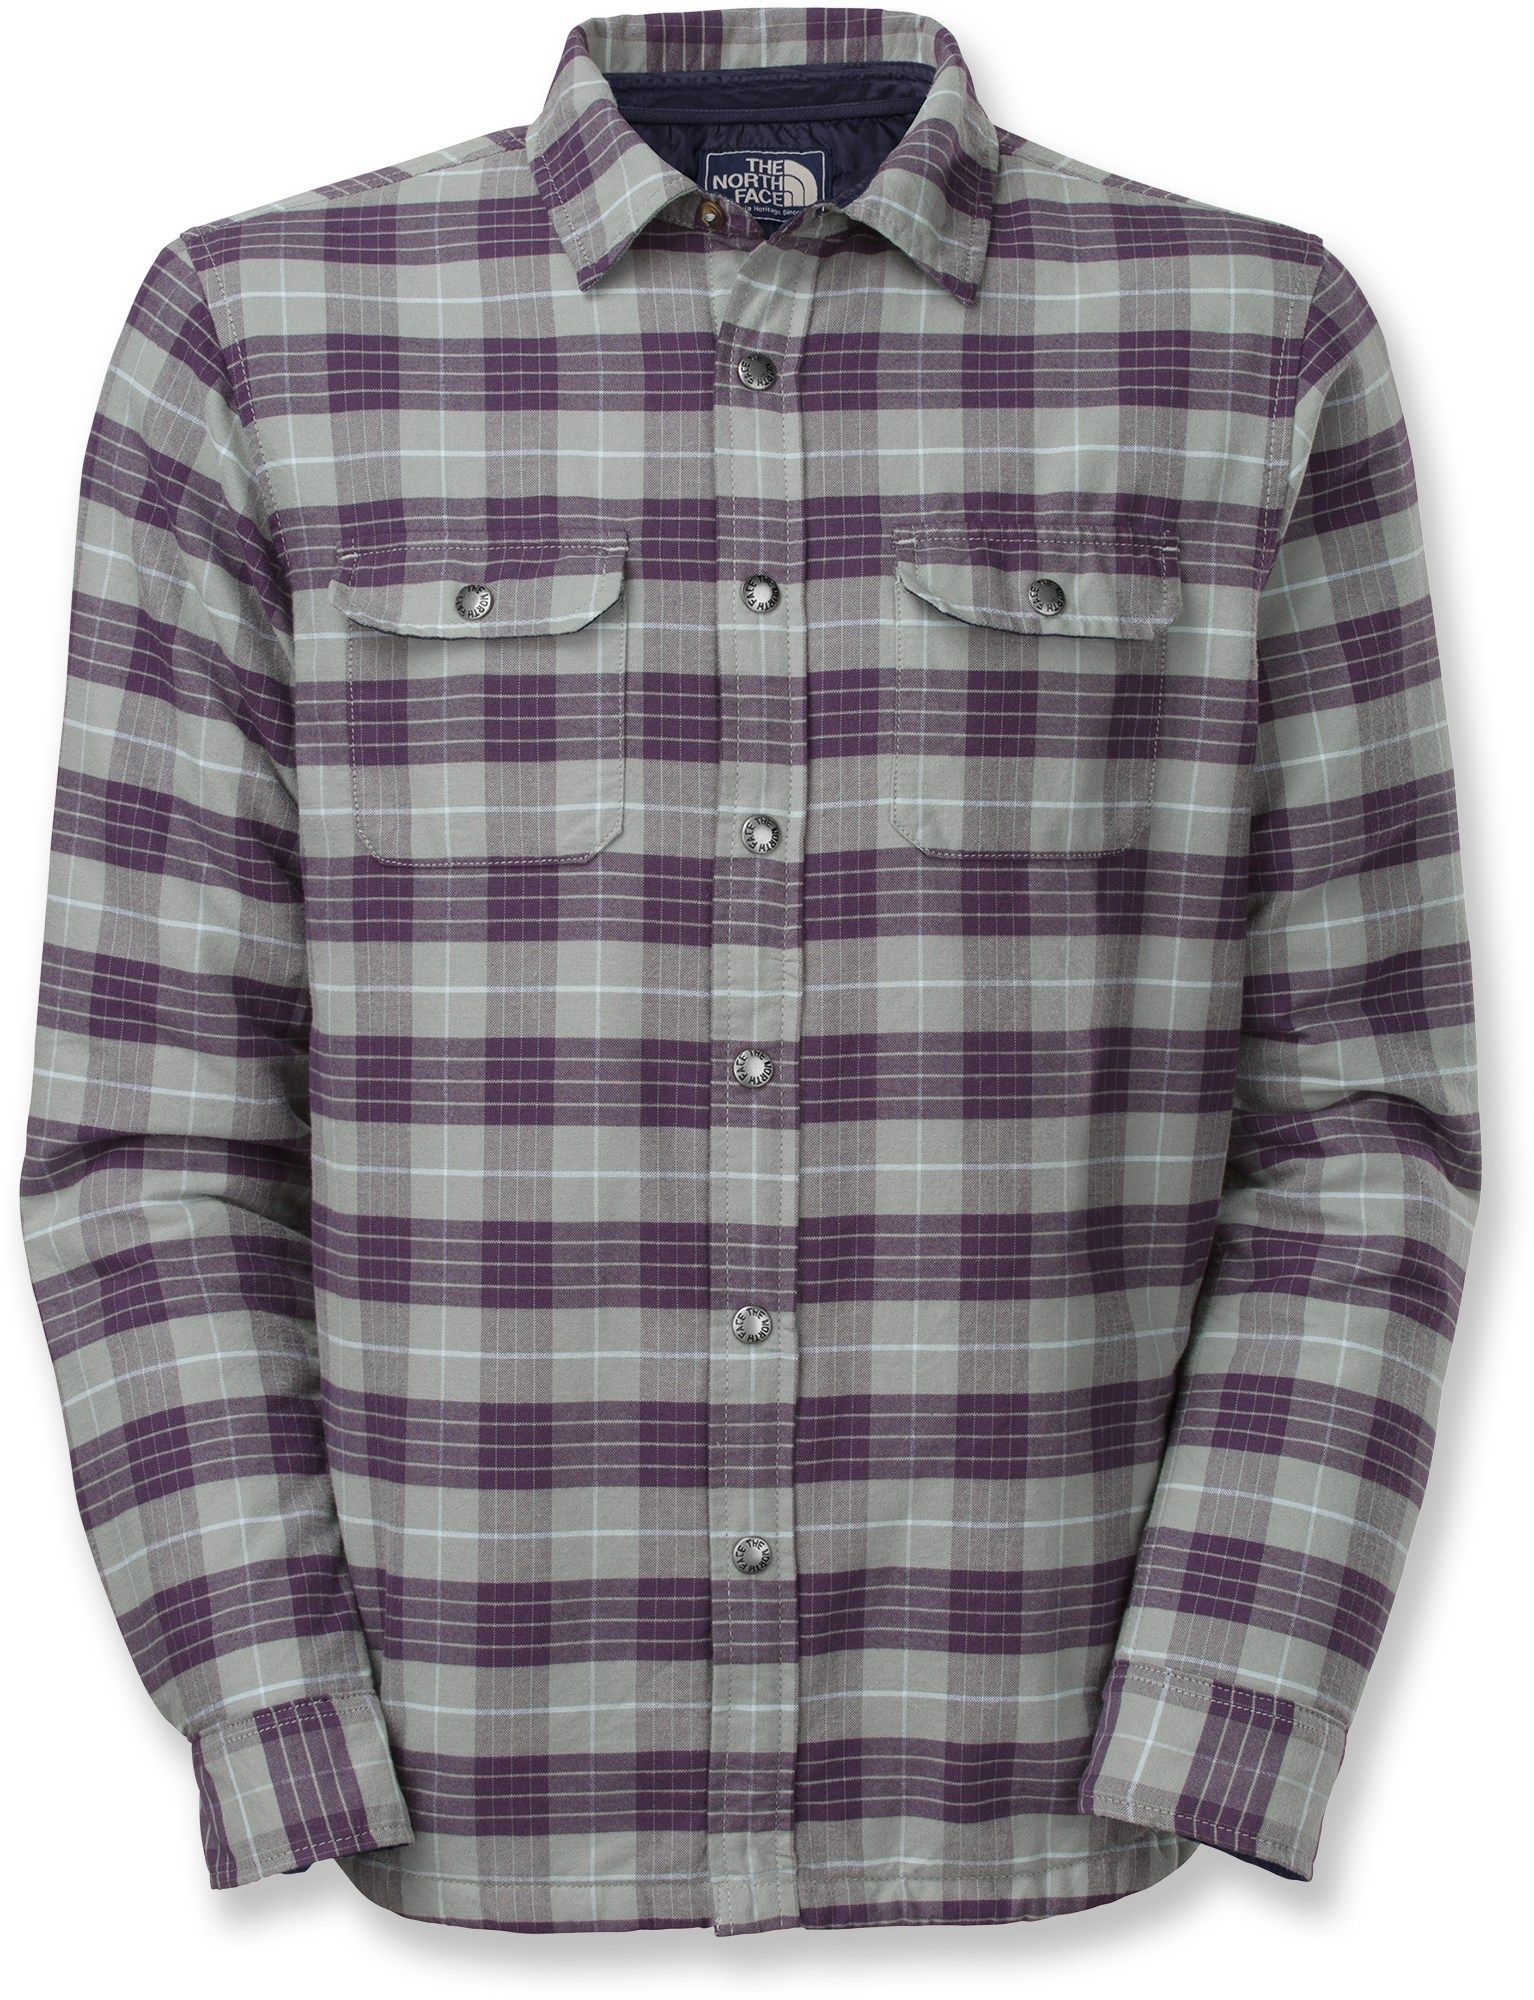 692b1f89d Monument Grey - The North Face Wesley Plaid Shirt Jacket - Men's ...